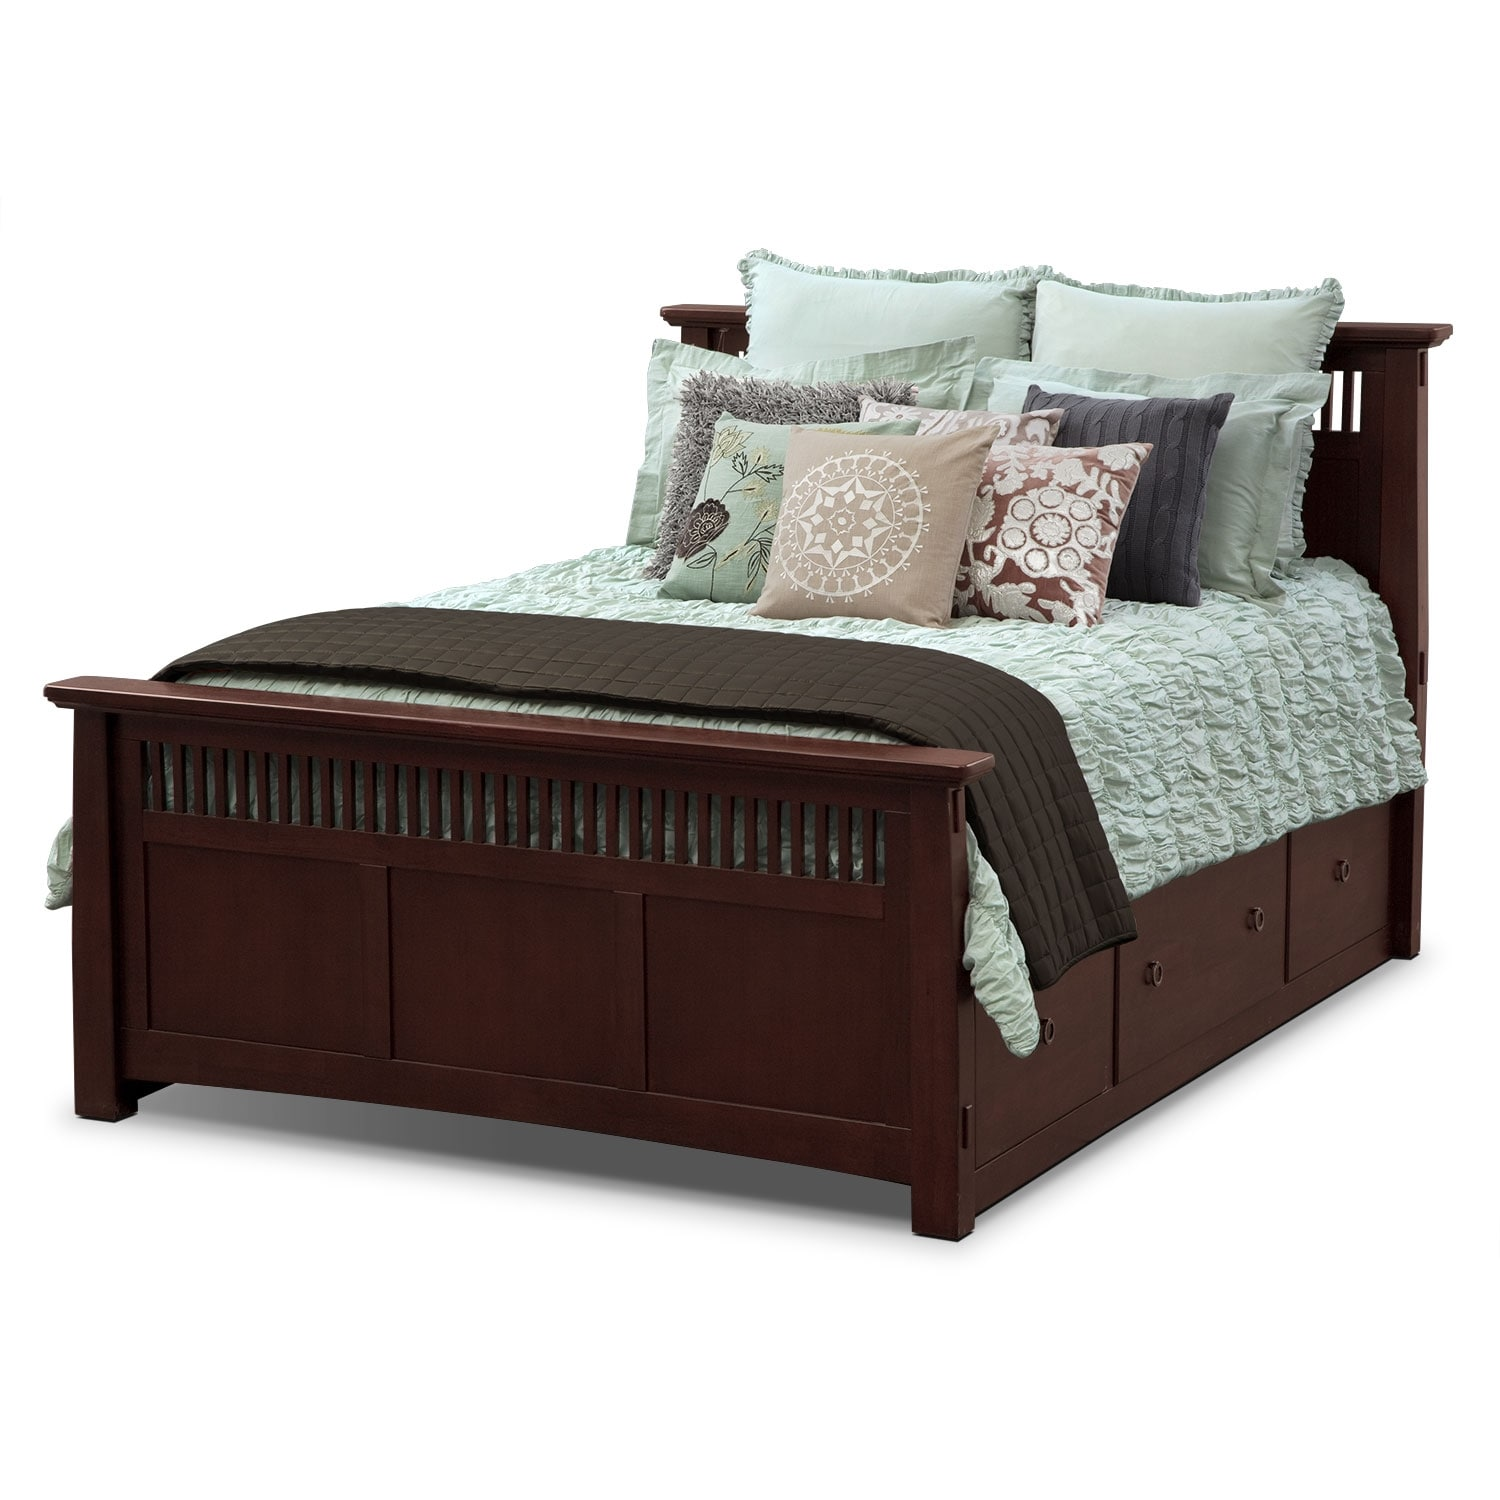 Kaitlin II Queen Bedding Set